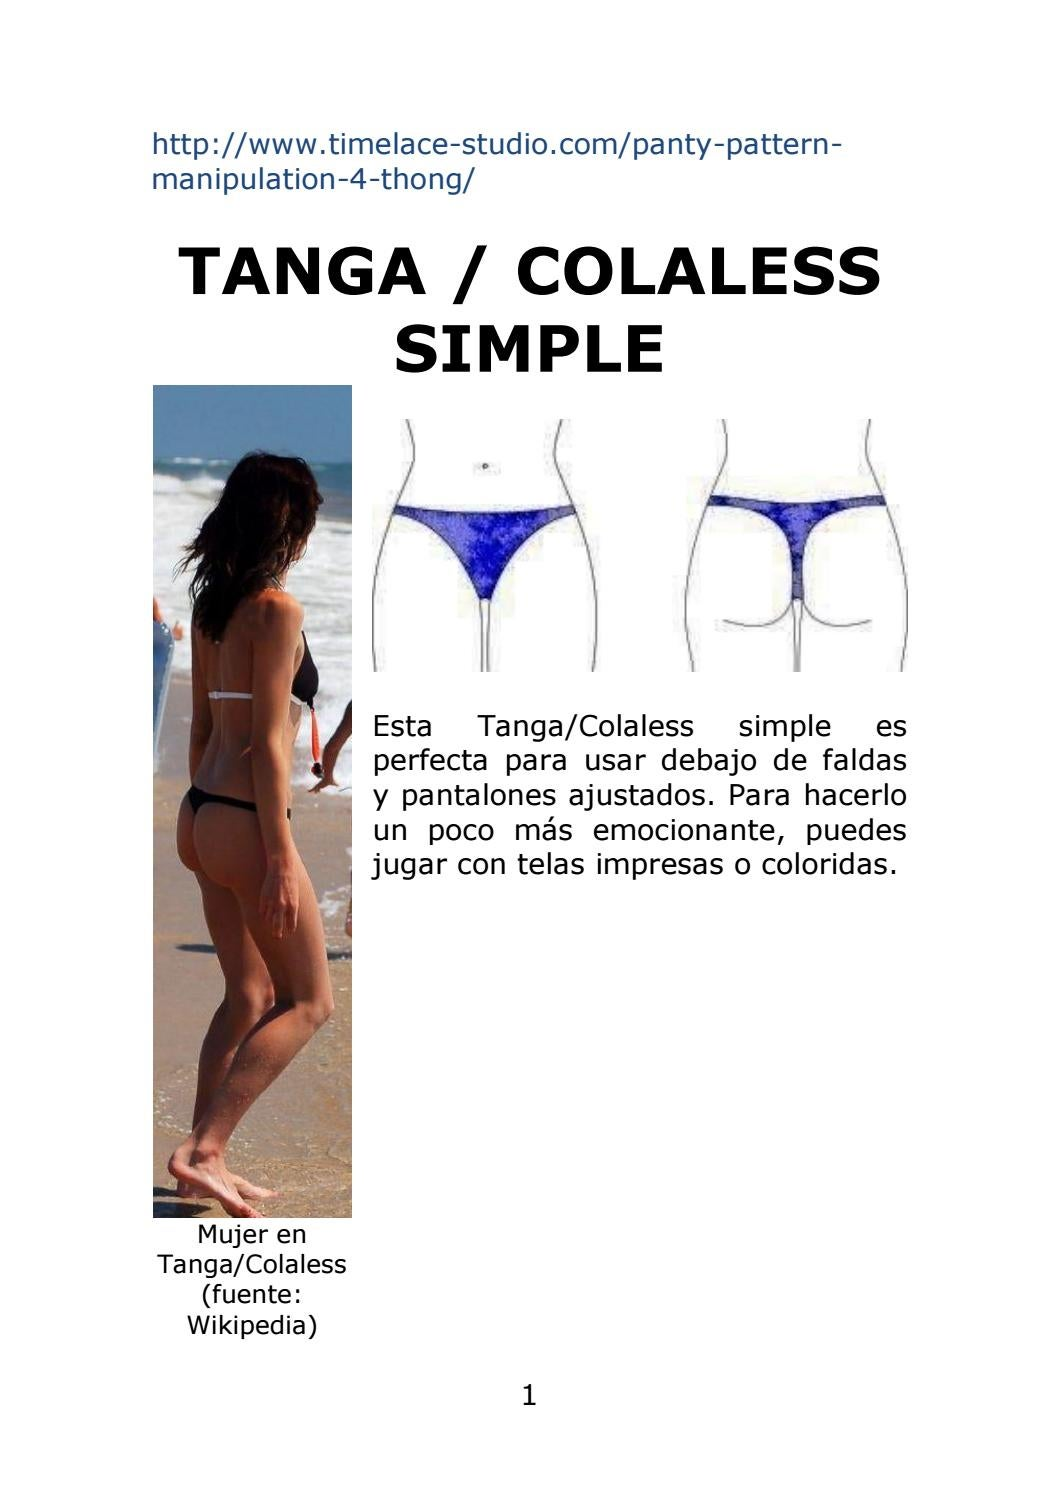 64f54e906 Tanga o Colaless Simple by Moldes   Patrones Bikinis y Tangas   Colaless -  Thongs Patterns - issuu